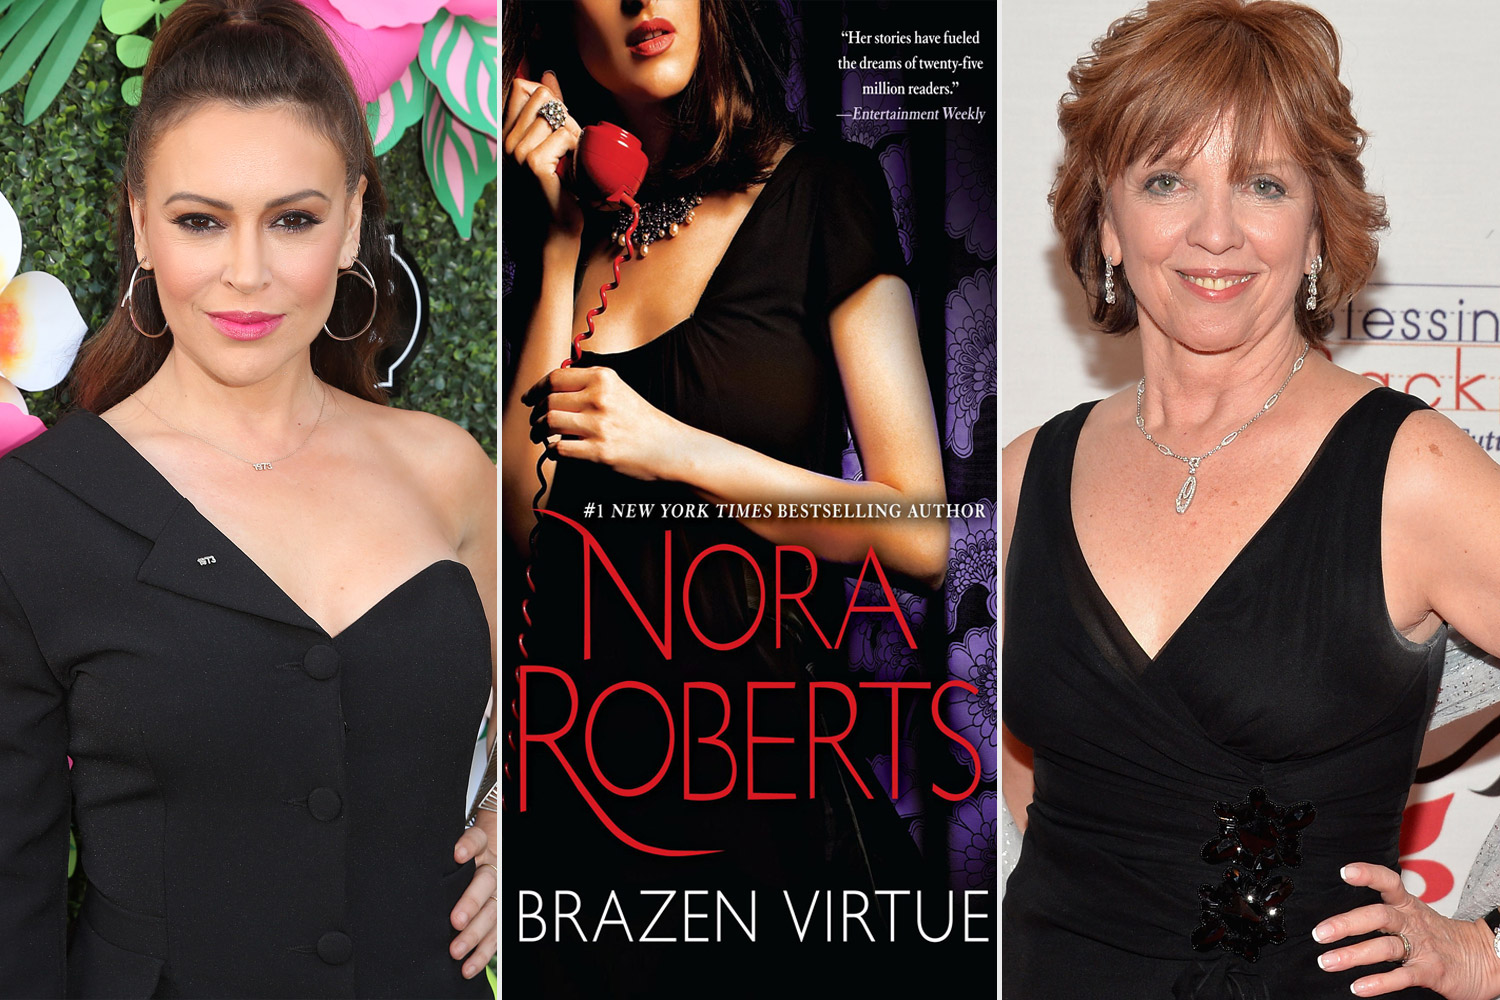 Alyssa Milano, the cover of Nora Roberts' Brazen Virtue, and Nora Roberts